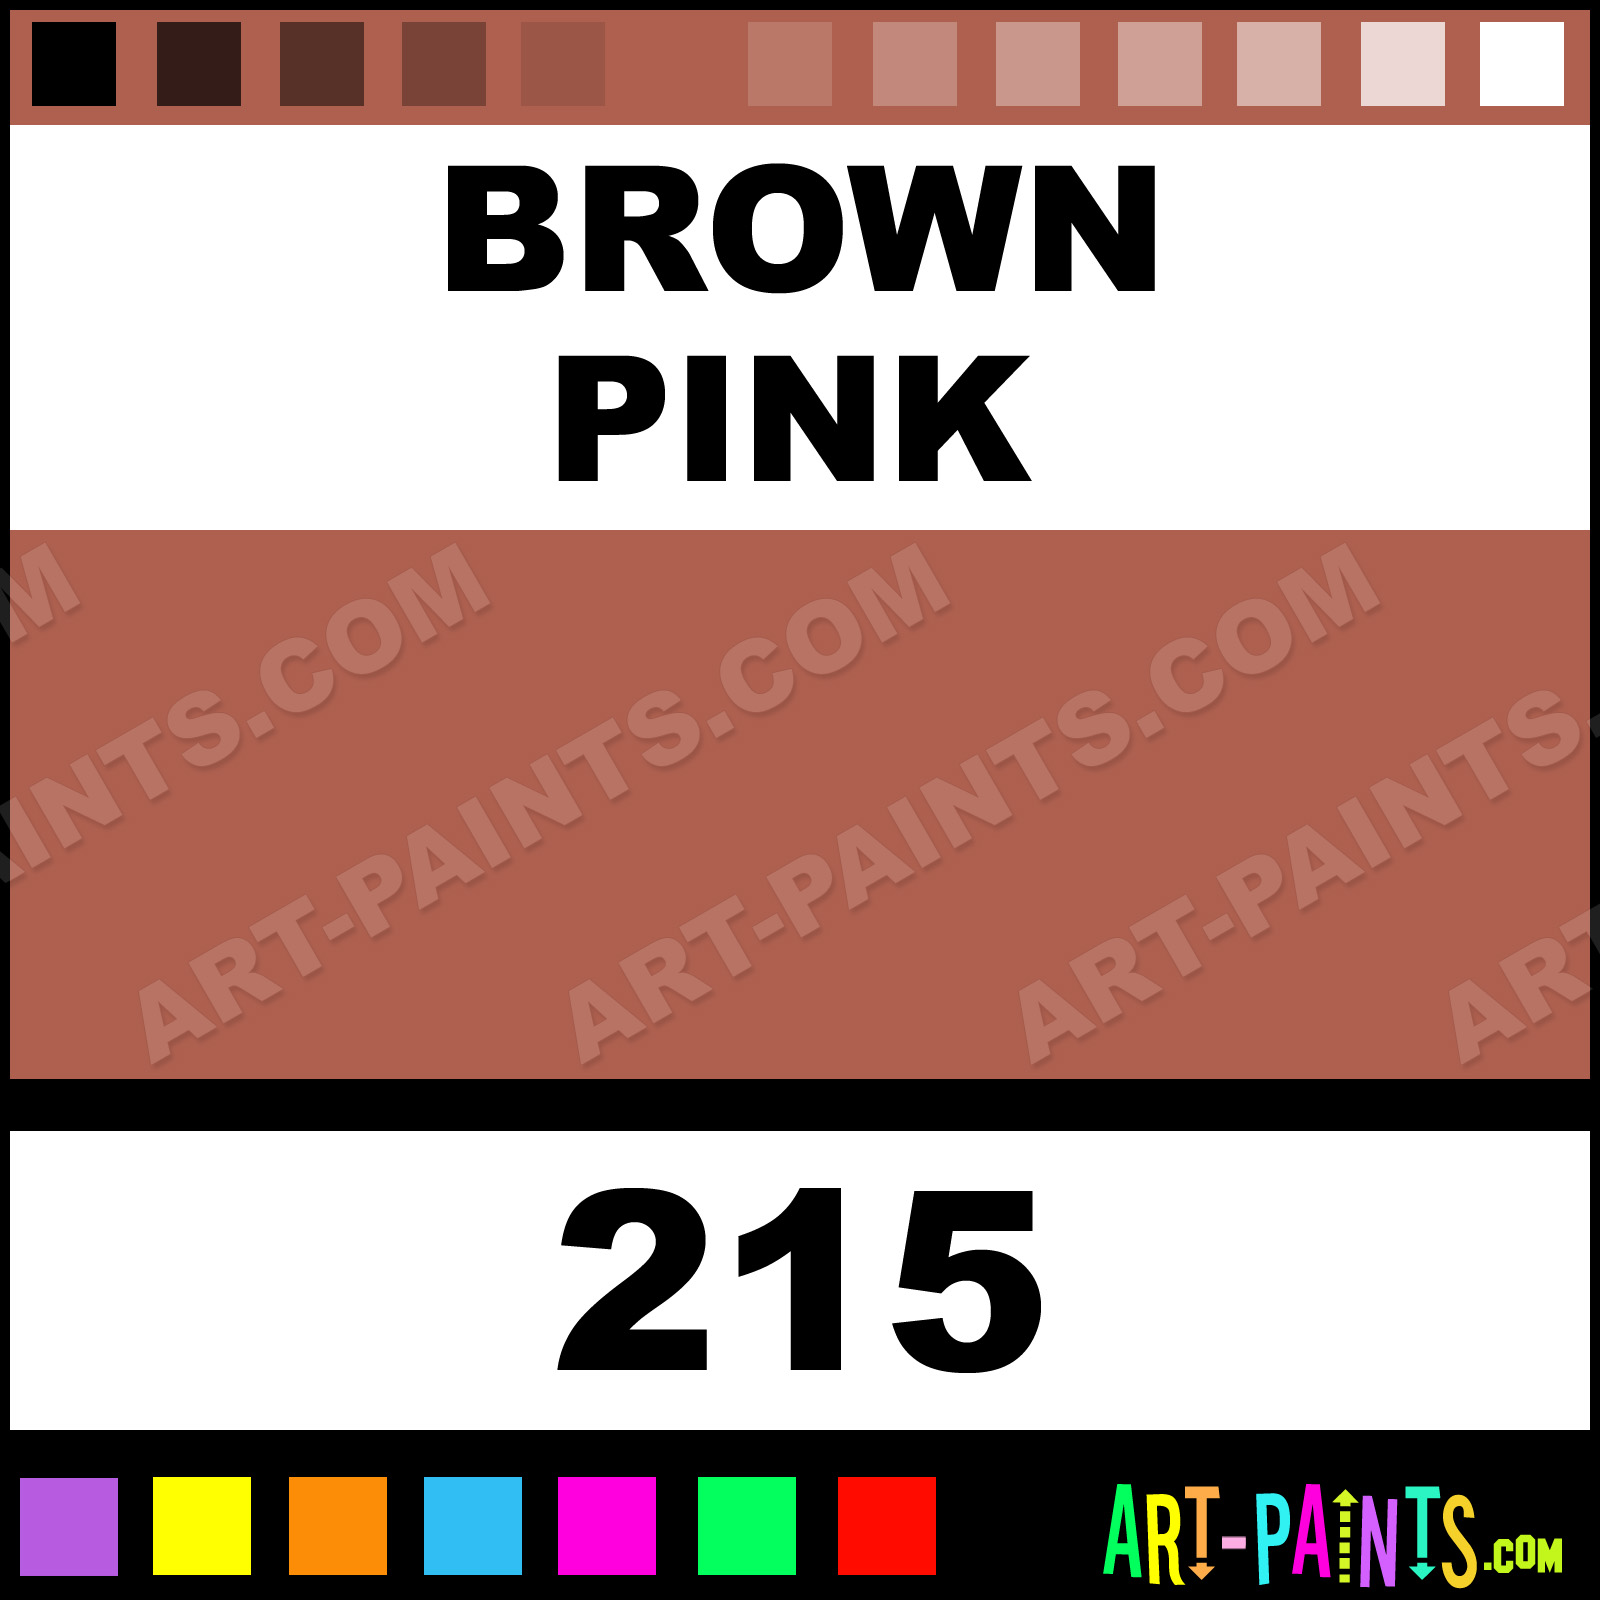 Brown Pink xlg